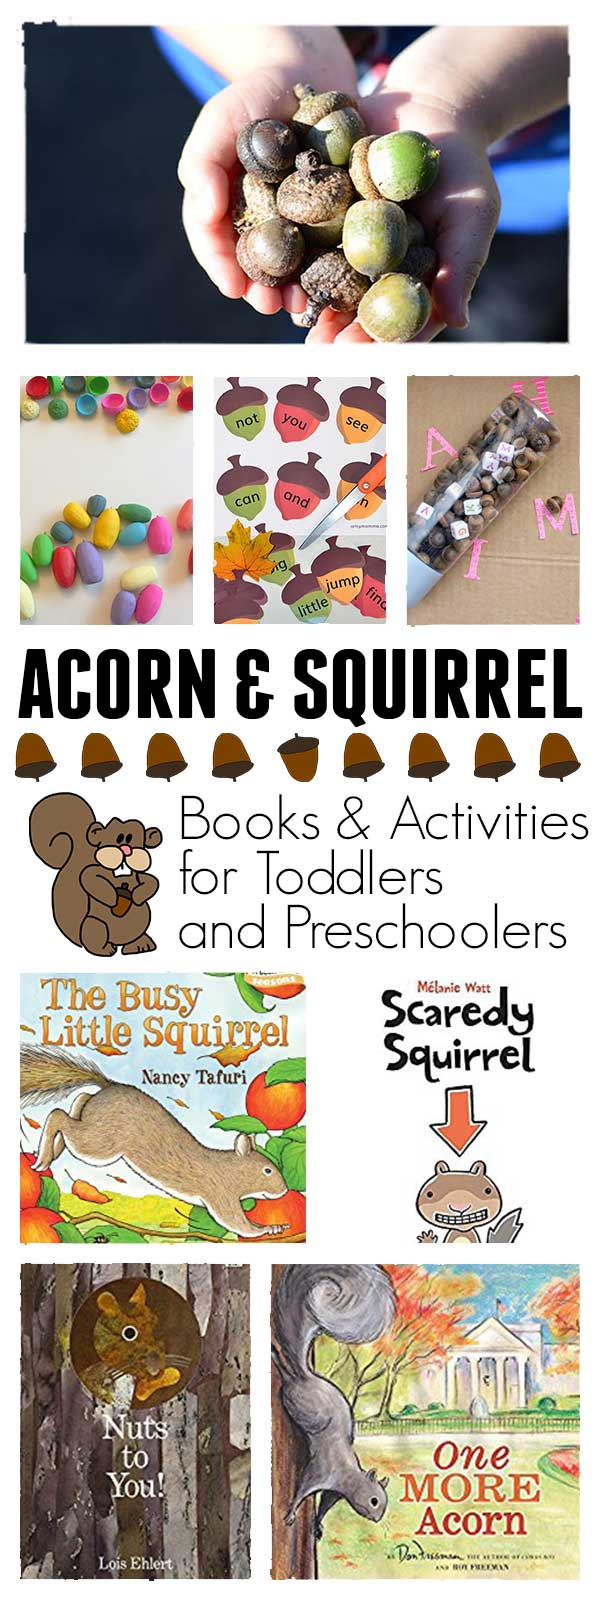 Acorn and Squirrel week plan of activities for toddlers and preschoolers with the featured book Scaredy Squirrel by Melanie Watt.